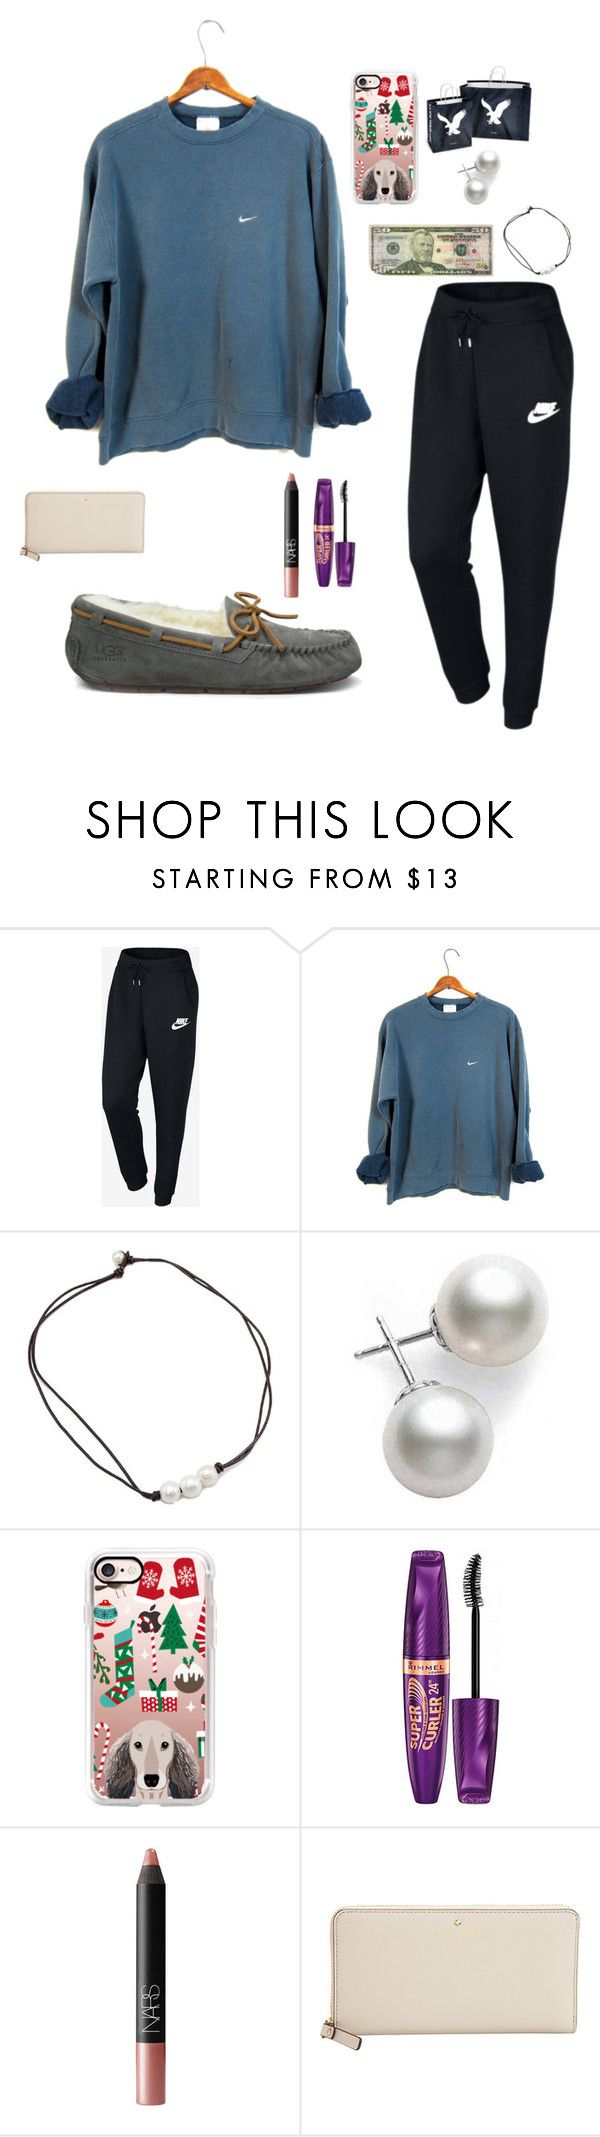 Black Friday Shopping // Friends Outfit by mae343 ❤ liked on Polyvore featuring NIKE, Mikimoto, Casetify, American Eagle Outfitters, Rimmel, NARS Cosmetics, Kate Spade, UGG and TheHolidayswithLauren